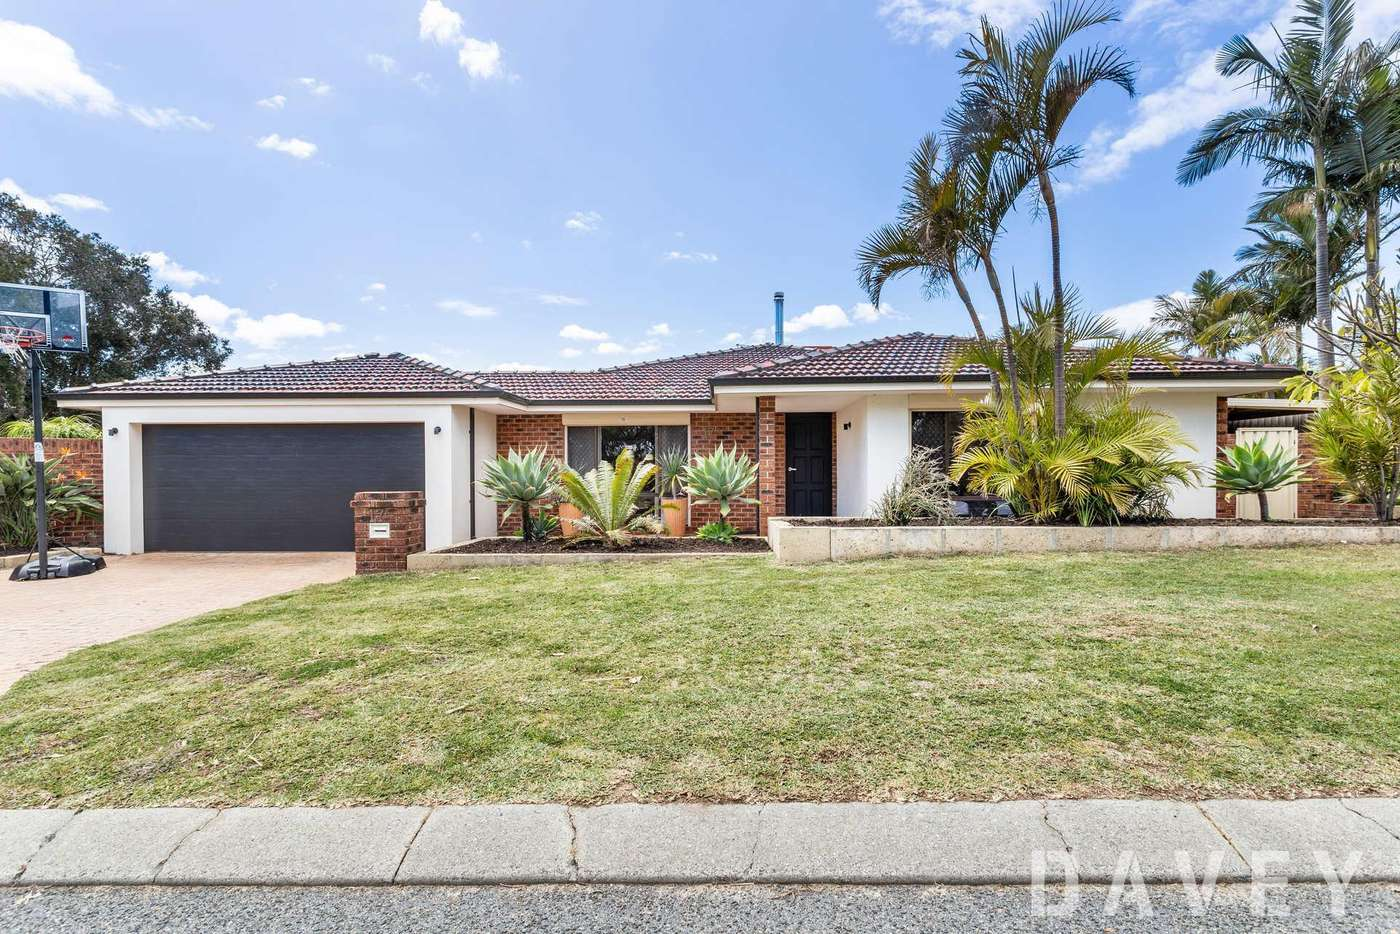 Main view of Homely house listing, 17 Newhaven Place, Kingsley WA 6026